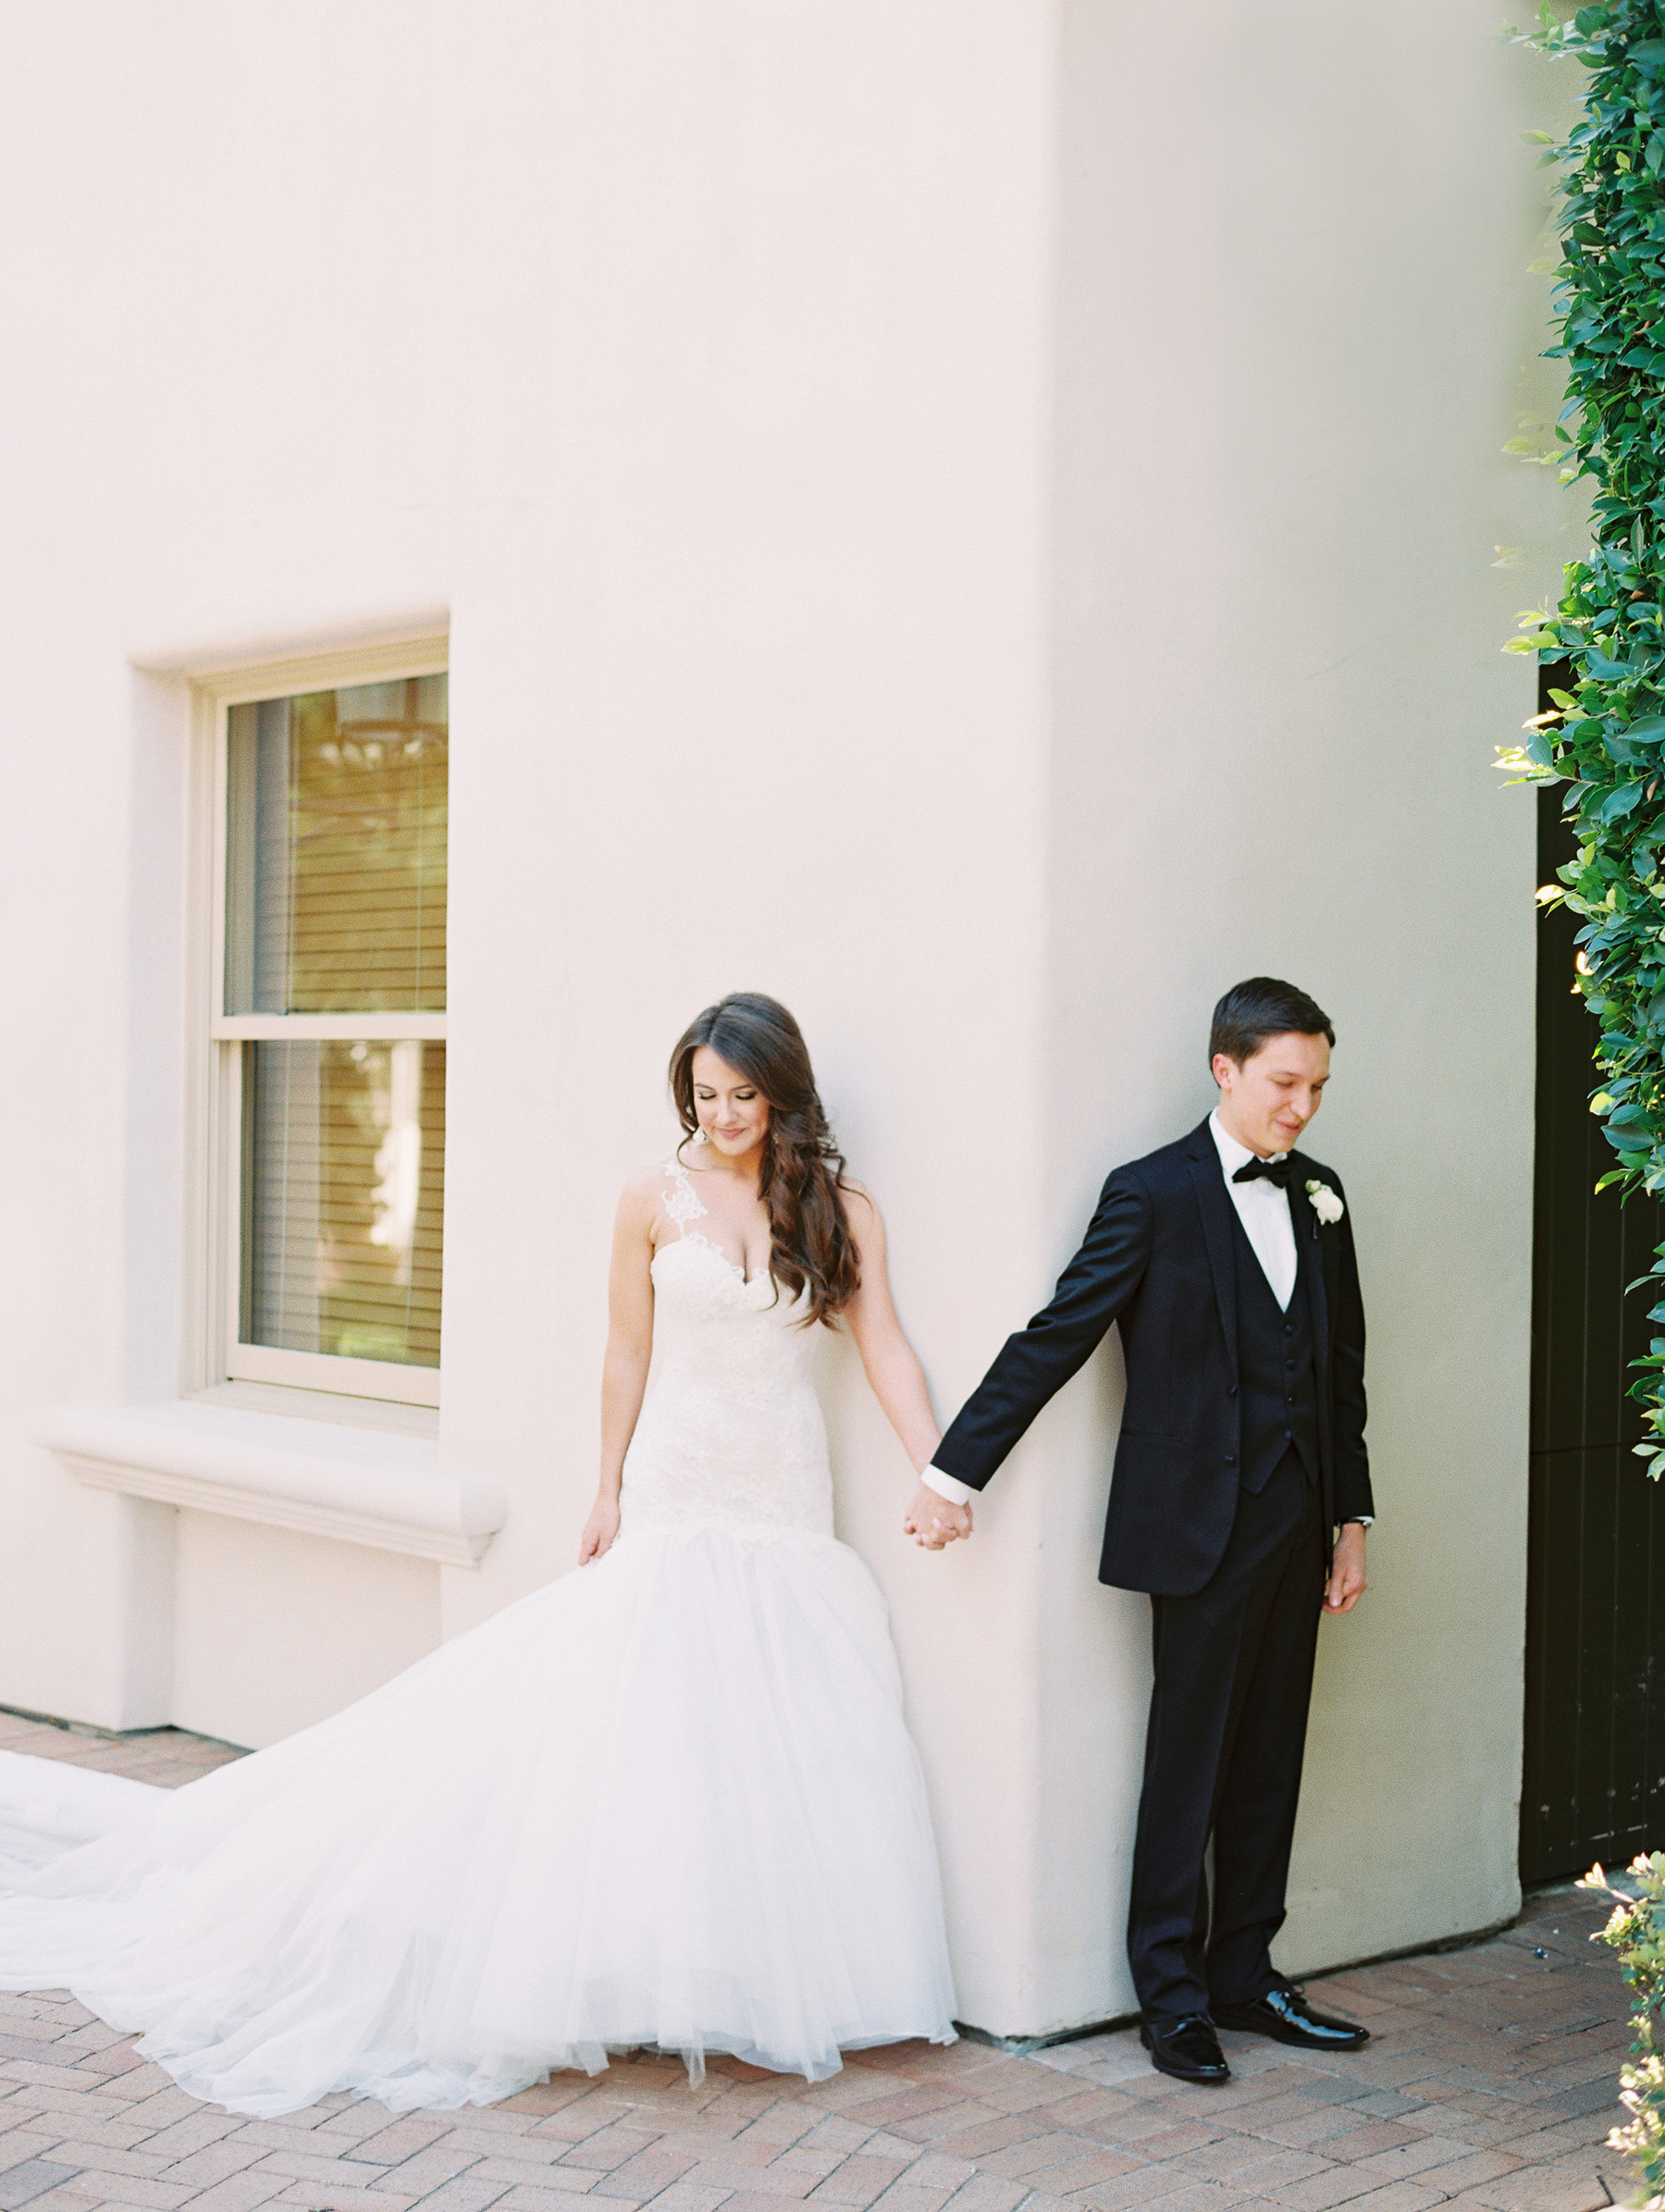 Pelican-hill-wedding-11.JPG